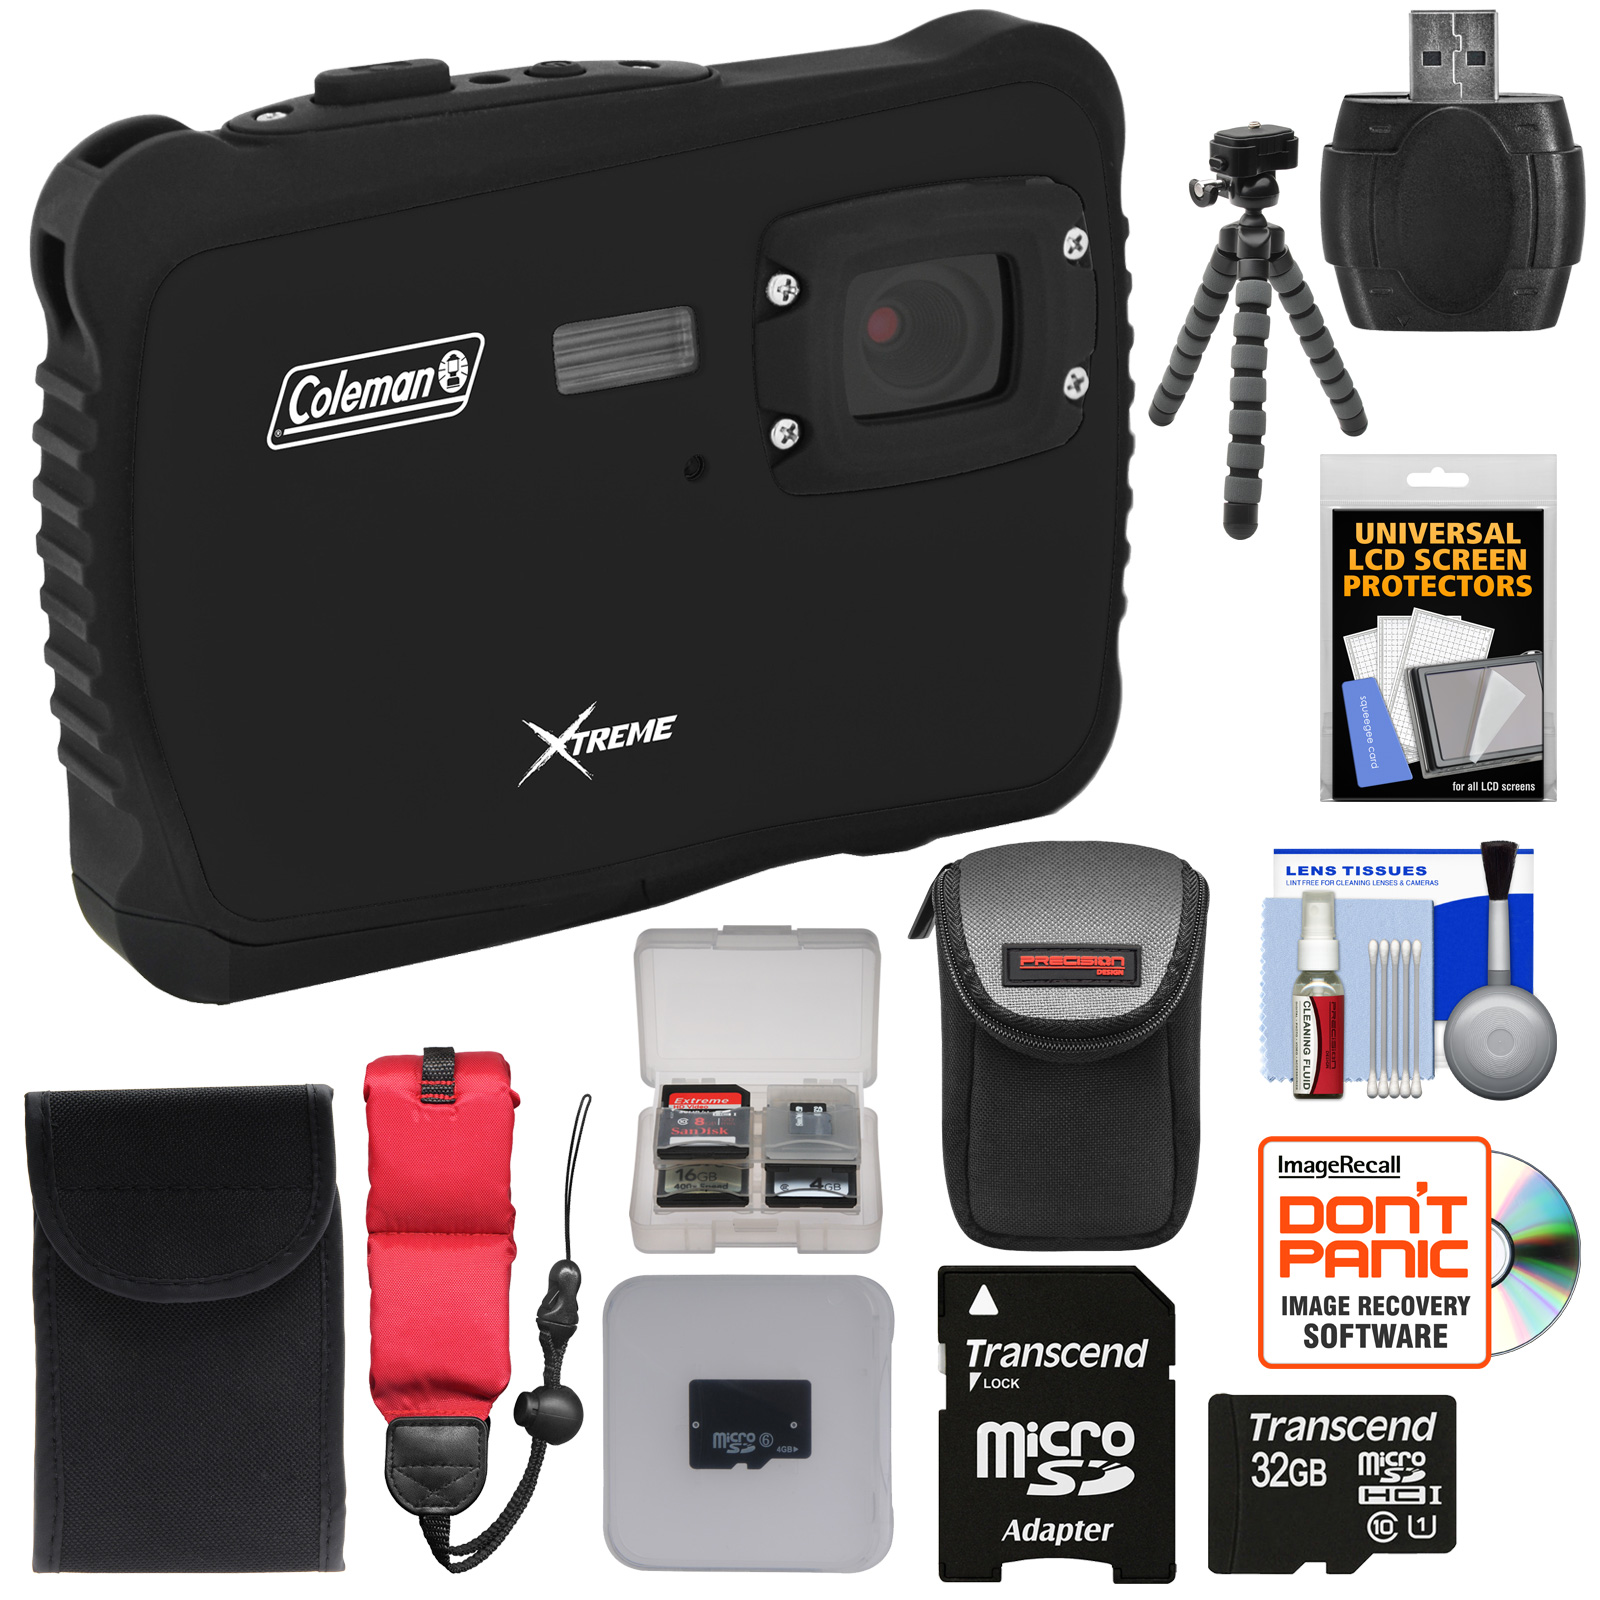 Coleman Xtreme C6WP HD Shock & Waterproof Digital Camera (Black) with 32GB Card   Case   Flex Tripod   Kit